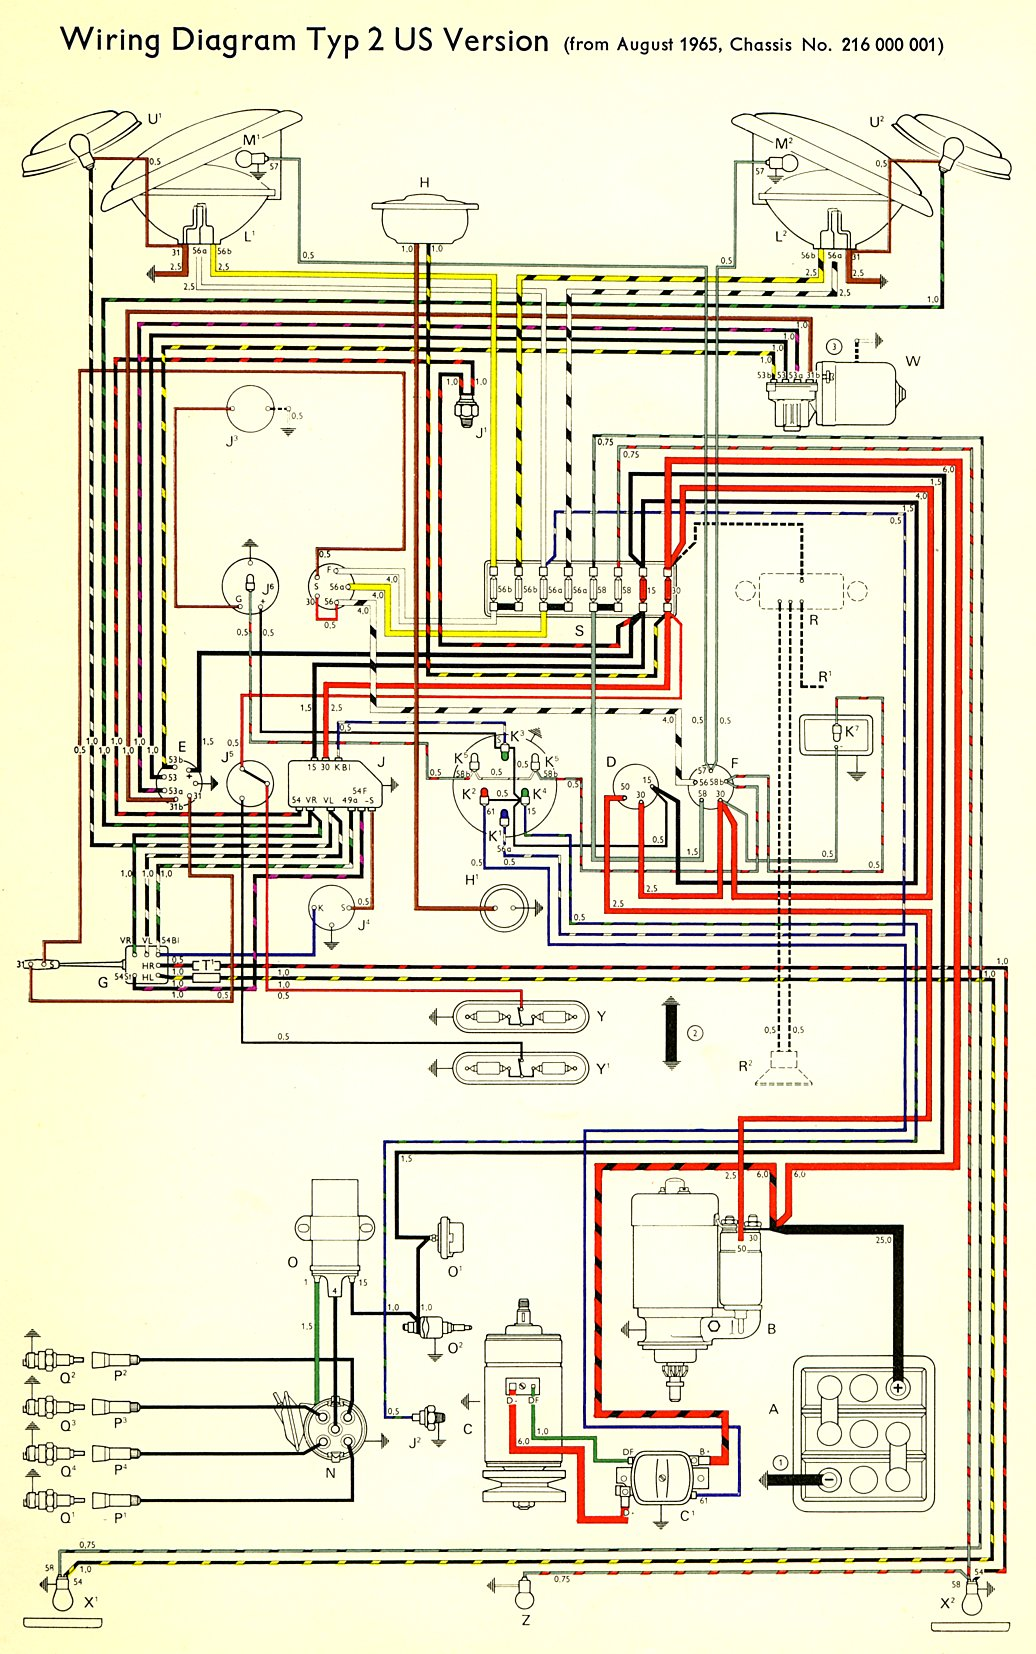 bus_66_USA 1966 bus wiring diagram (usa) thegoldenbug com 1957 vw bug wiring diagram at soozxer.org